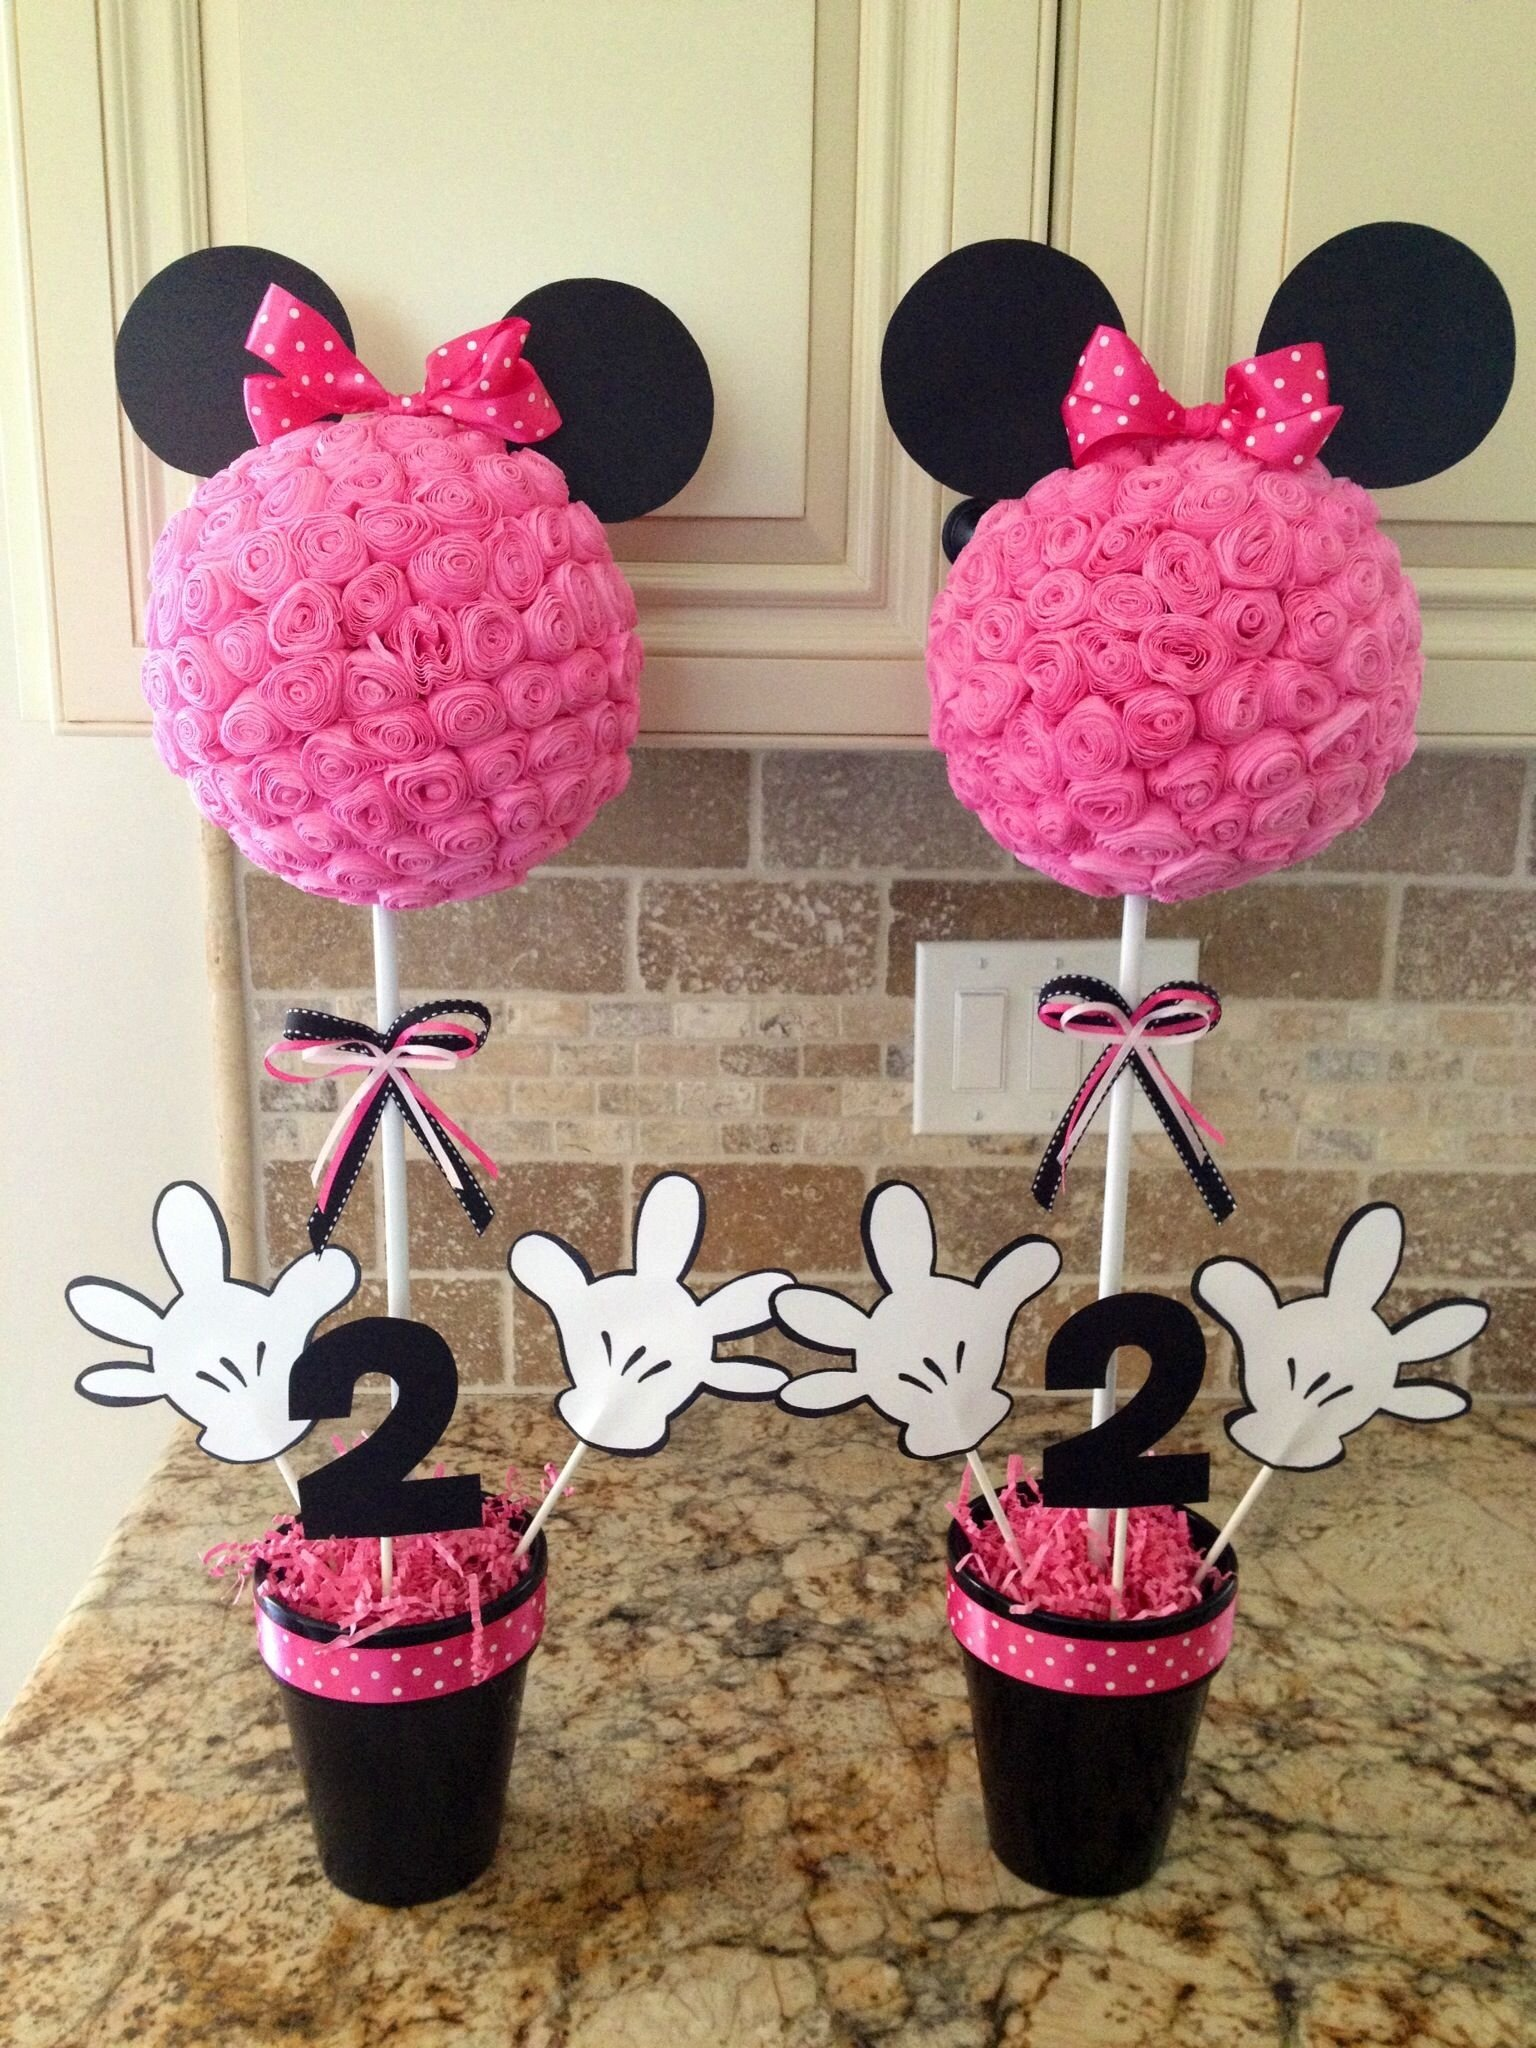 10 Wonderful Minnie Mouse Ideas For Birthday Party minnie mouse centerpieces minnie mouse pinterest minnie mouse 3